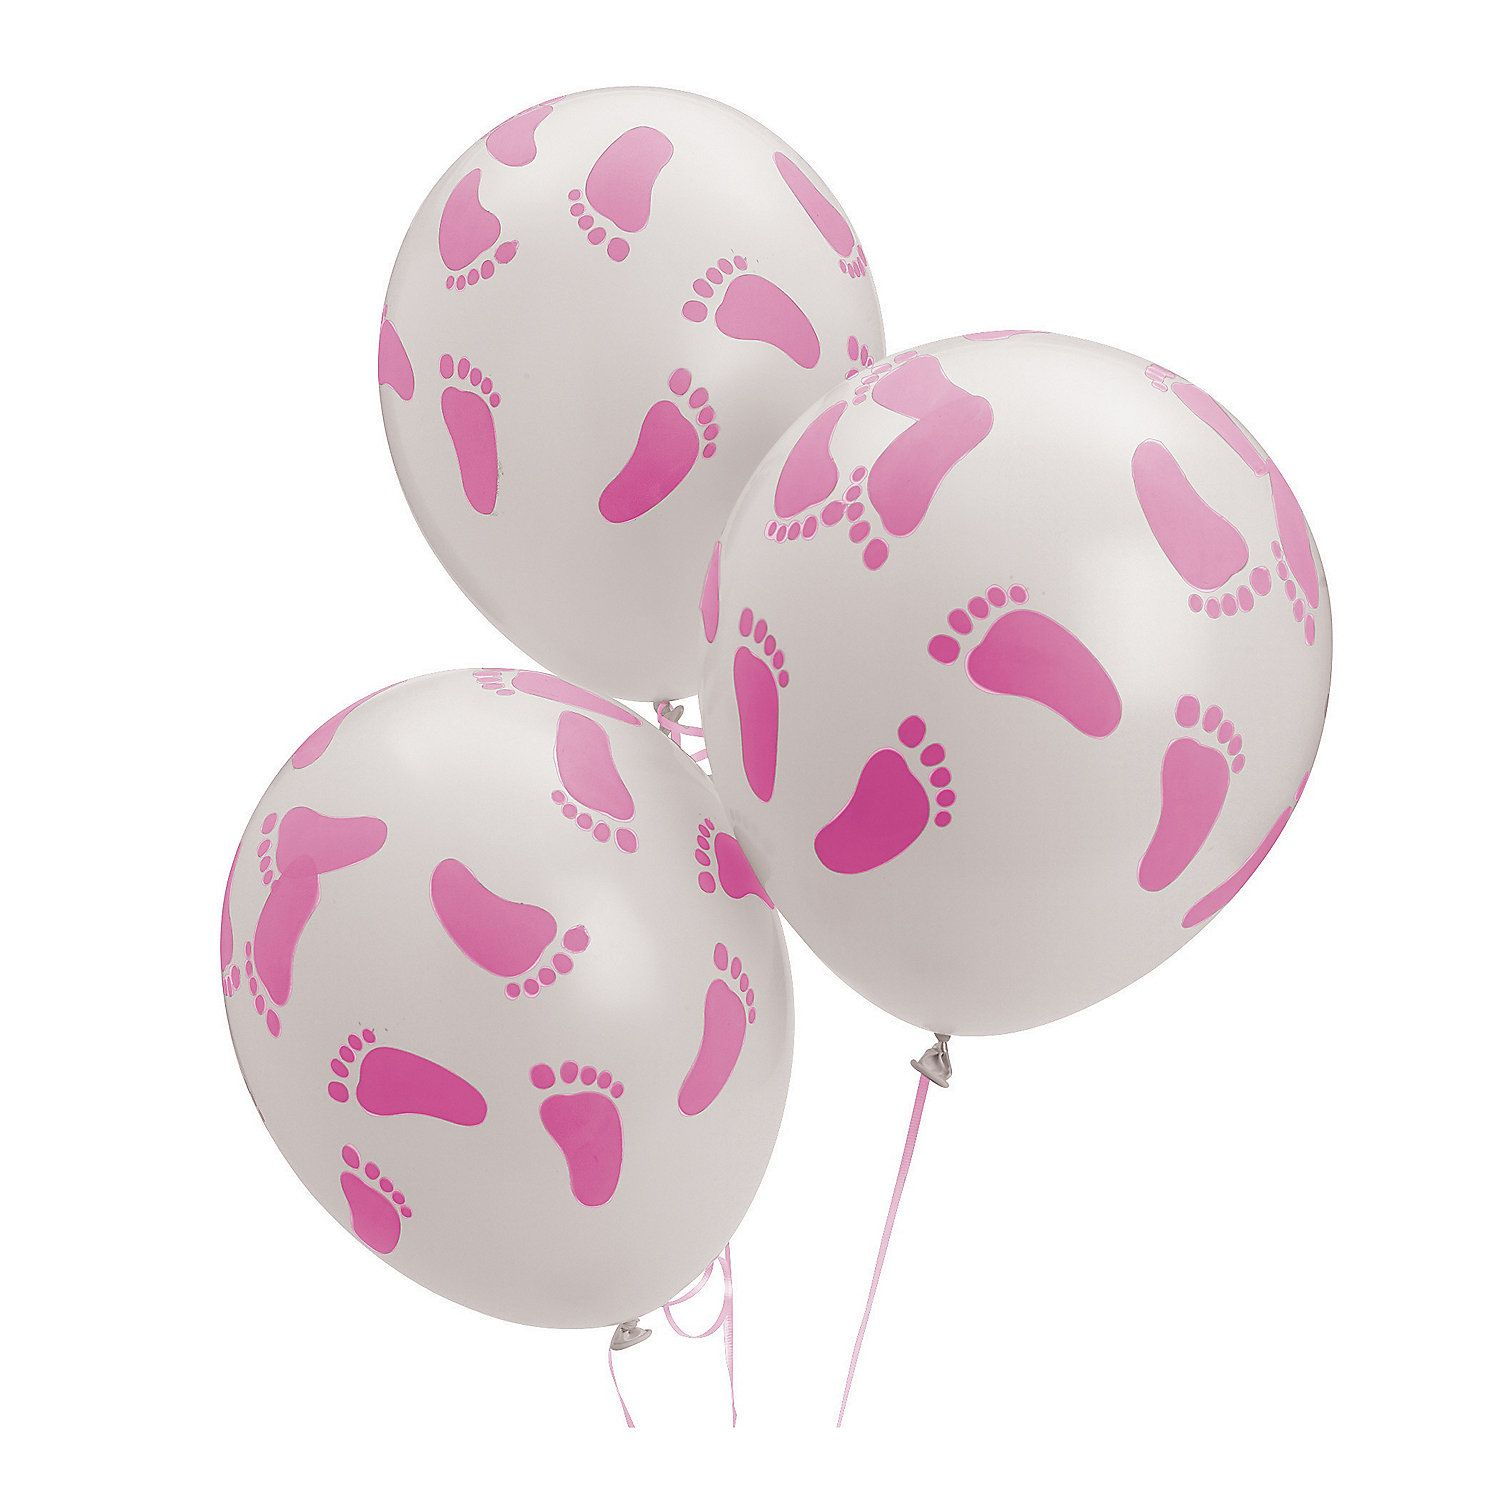 Bargain Balloons - Baby Mylar Balloons and Foil Balloons